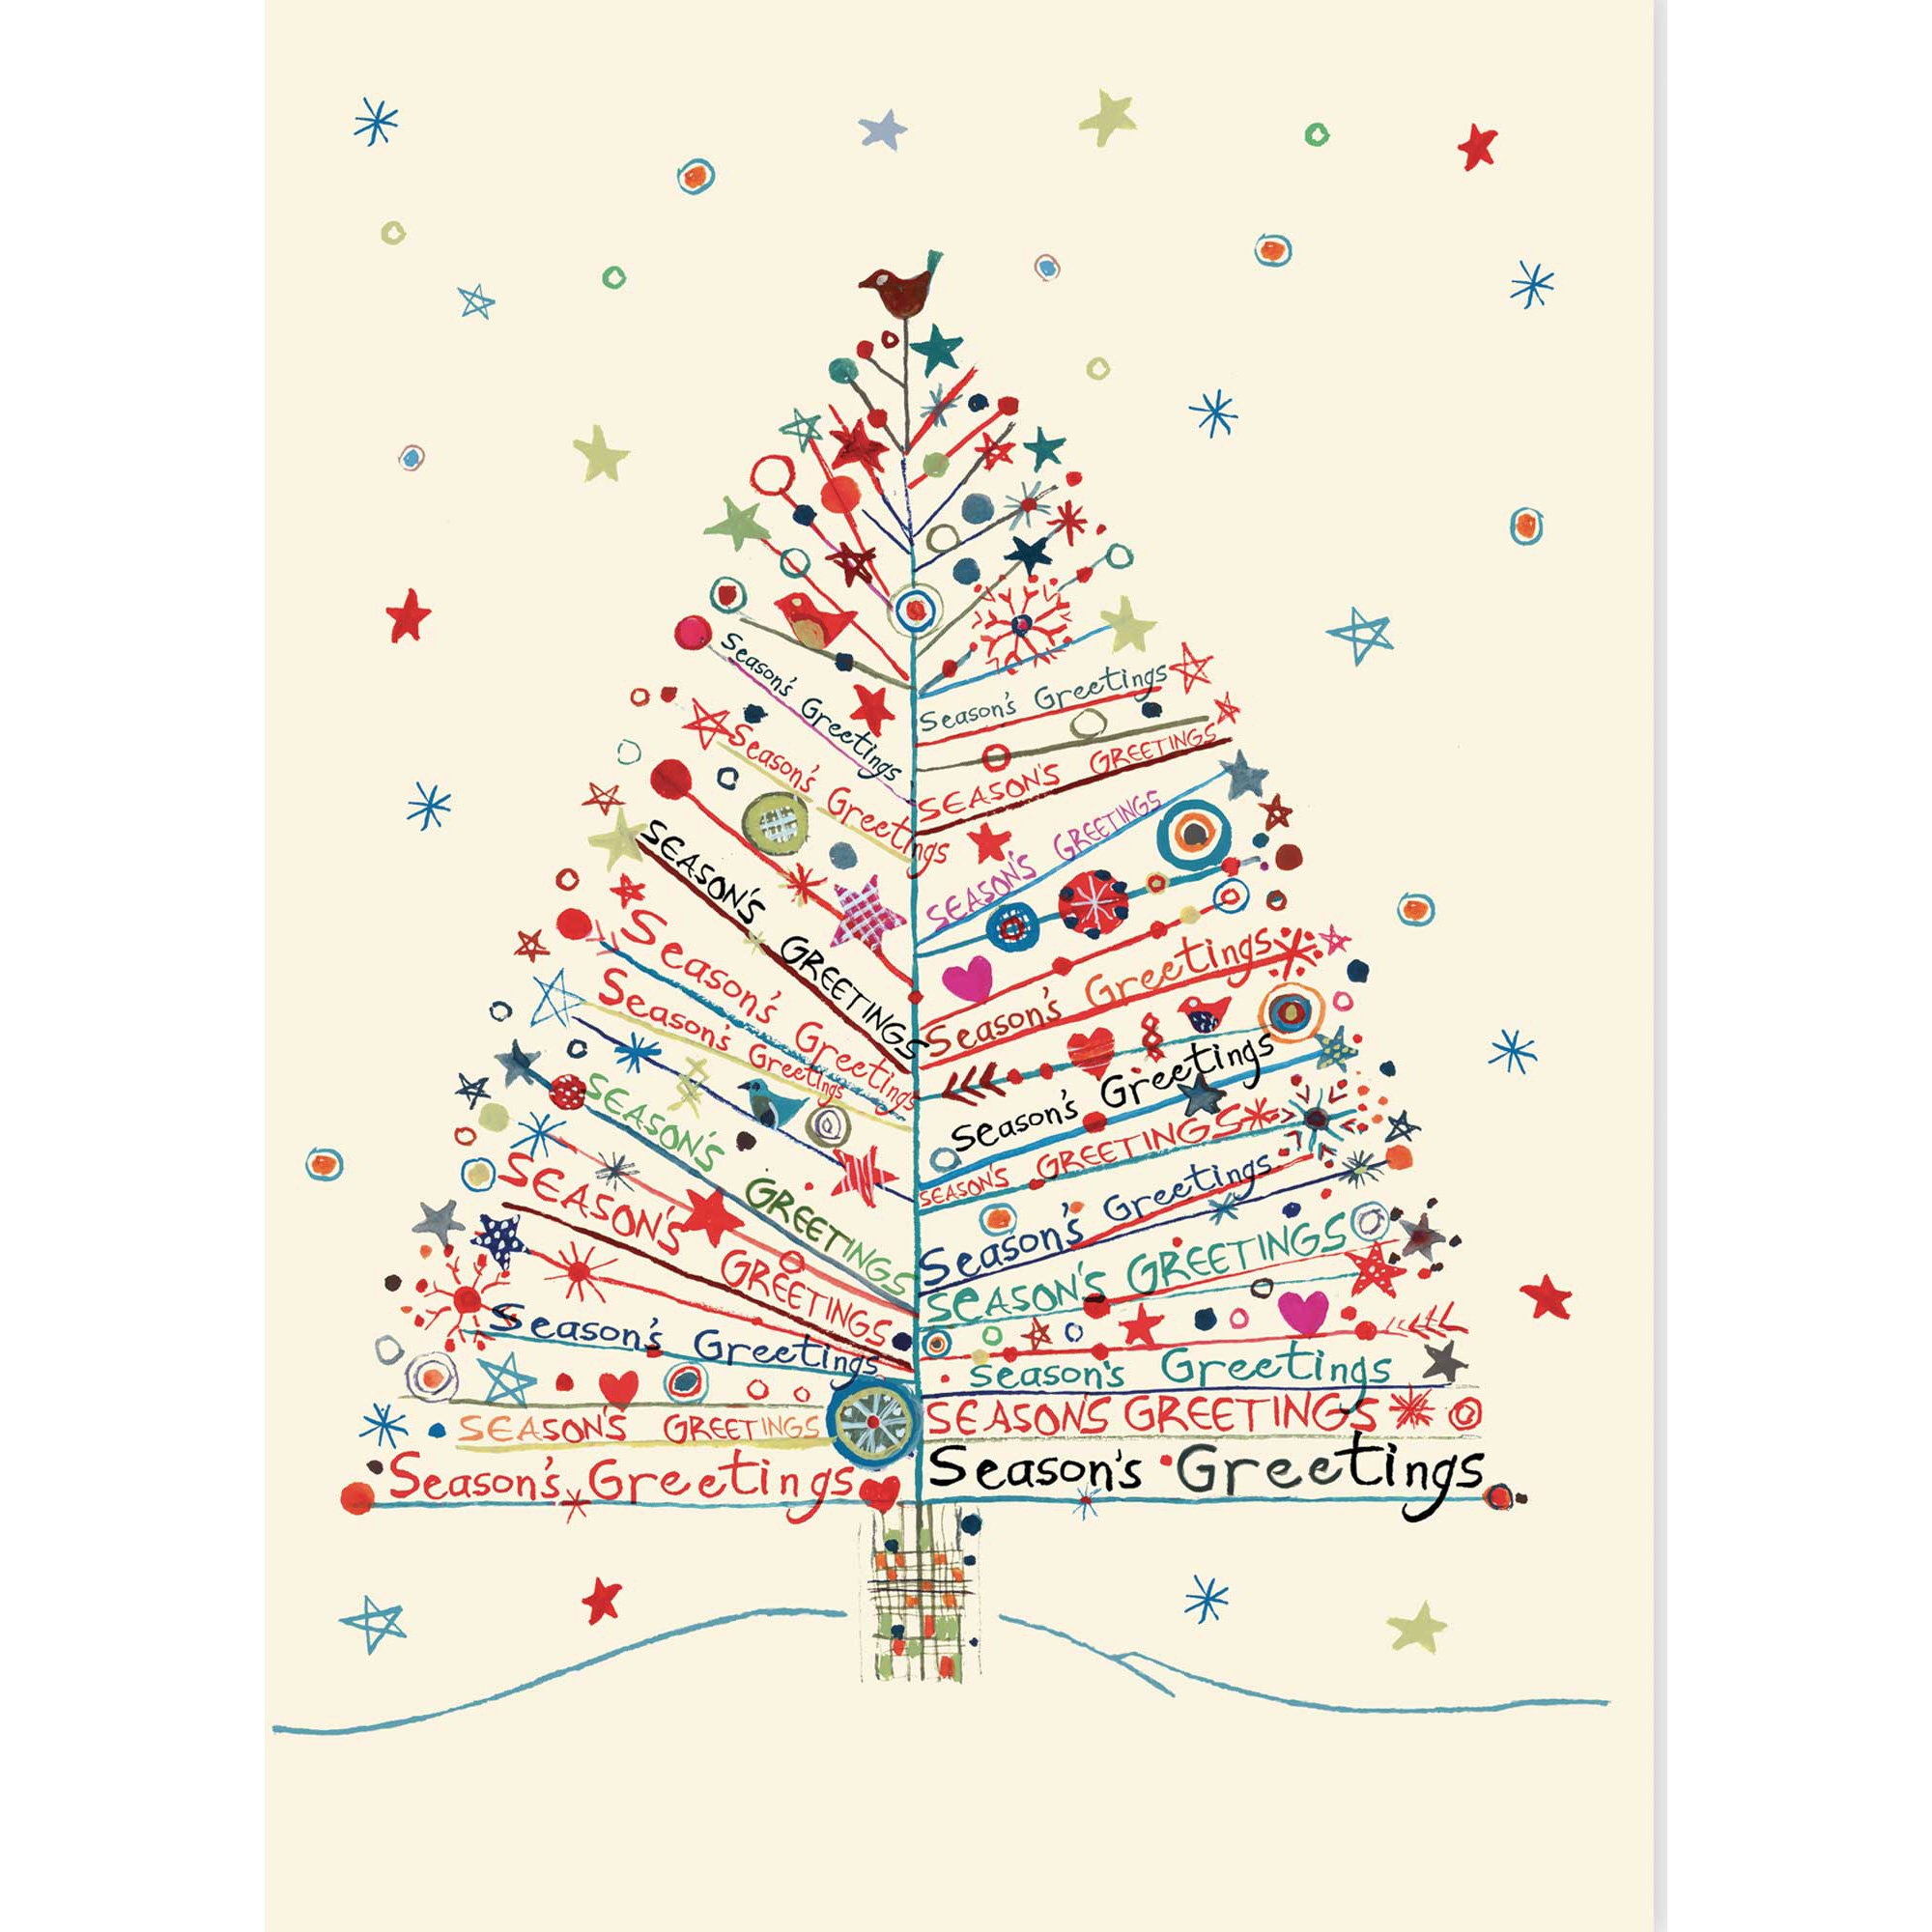 Seasons greetings tree large boxed holiday cards christmas cards seasons greetings tree large boxed holiday cards christmas cards greeting cards peter pauper press 9781441314949 amazon books m4hsunfo